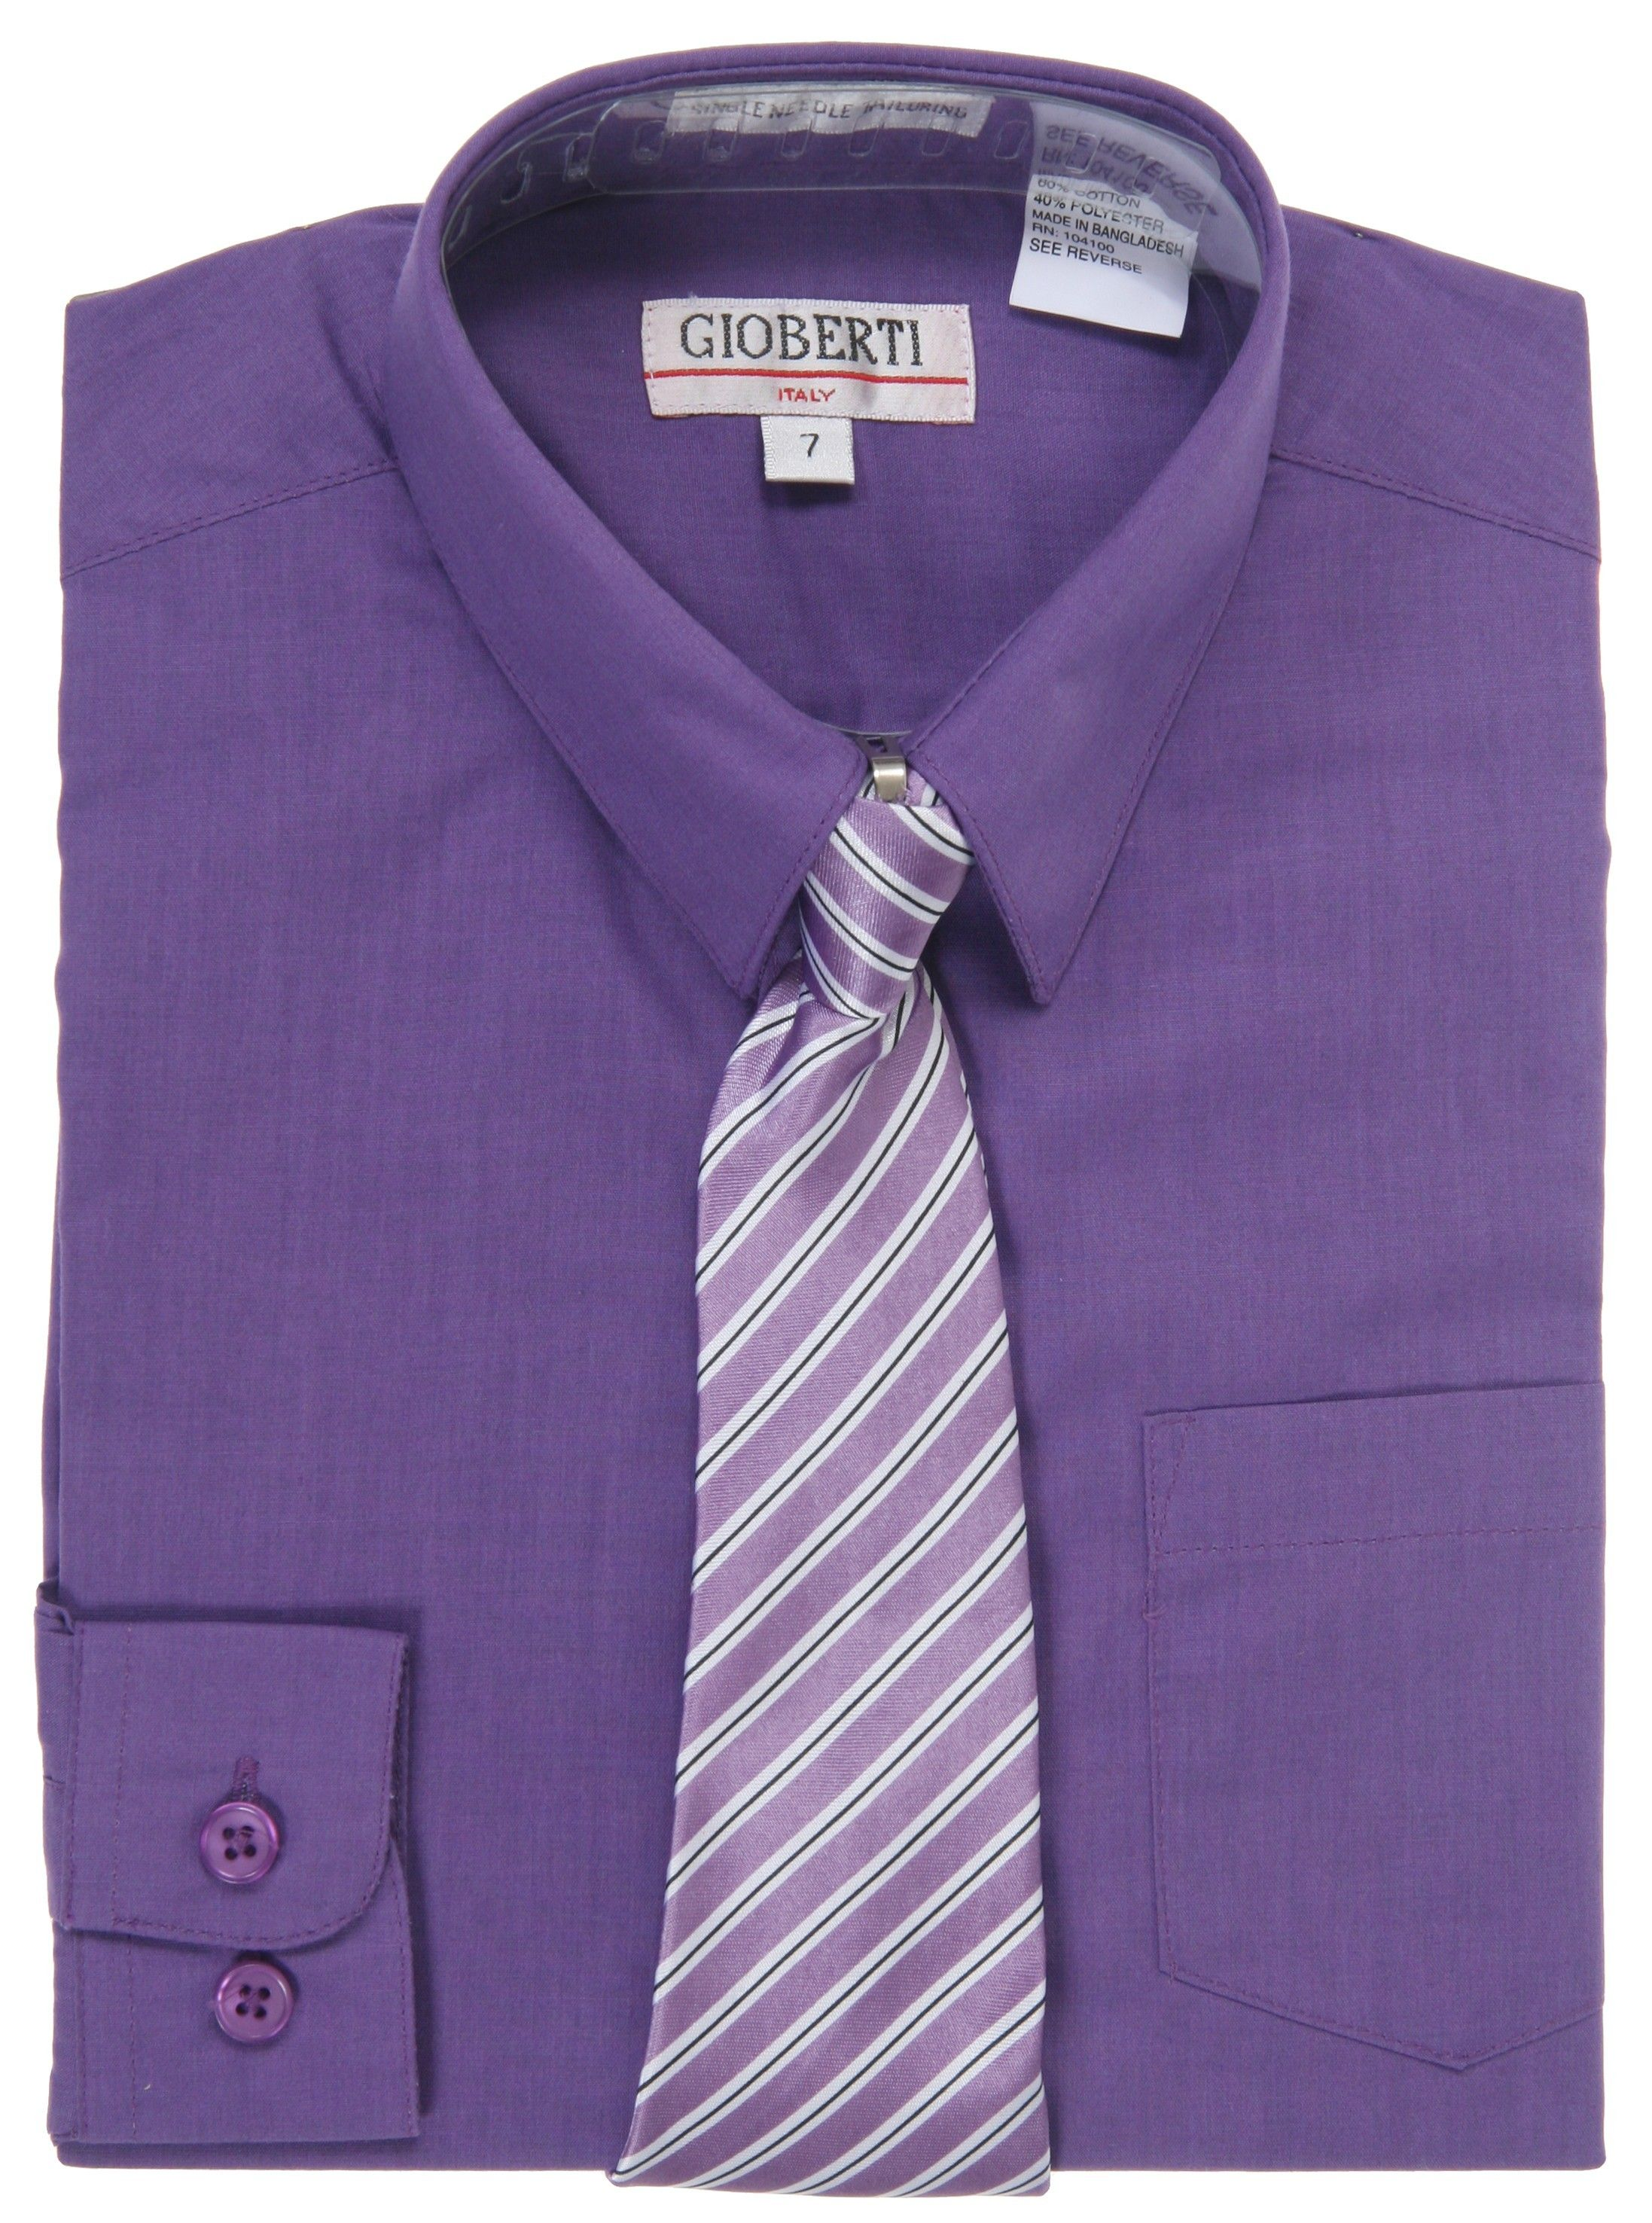 Purple Long Sleeve Boys Dress Shirt With Tie Men Style